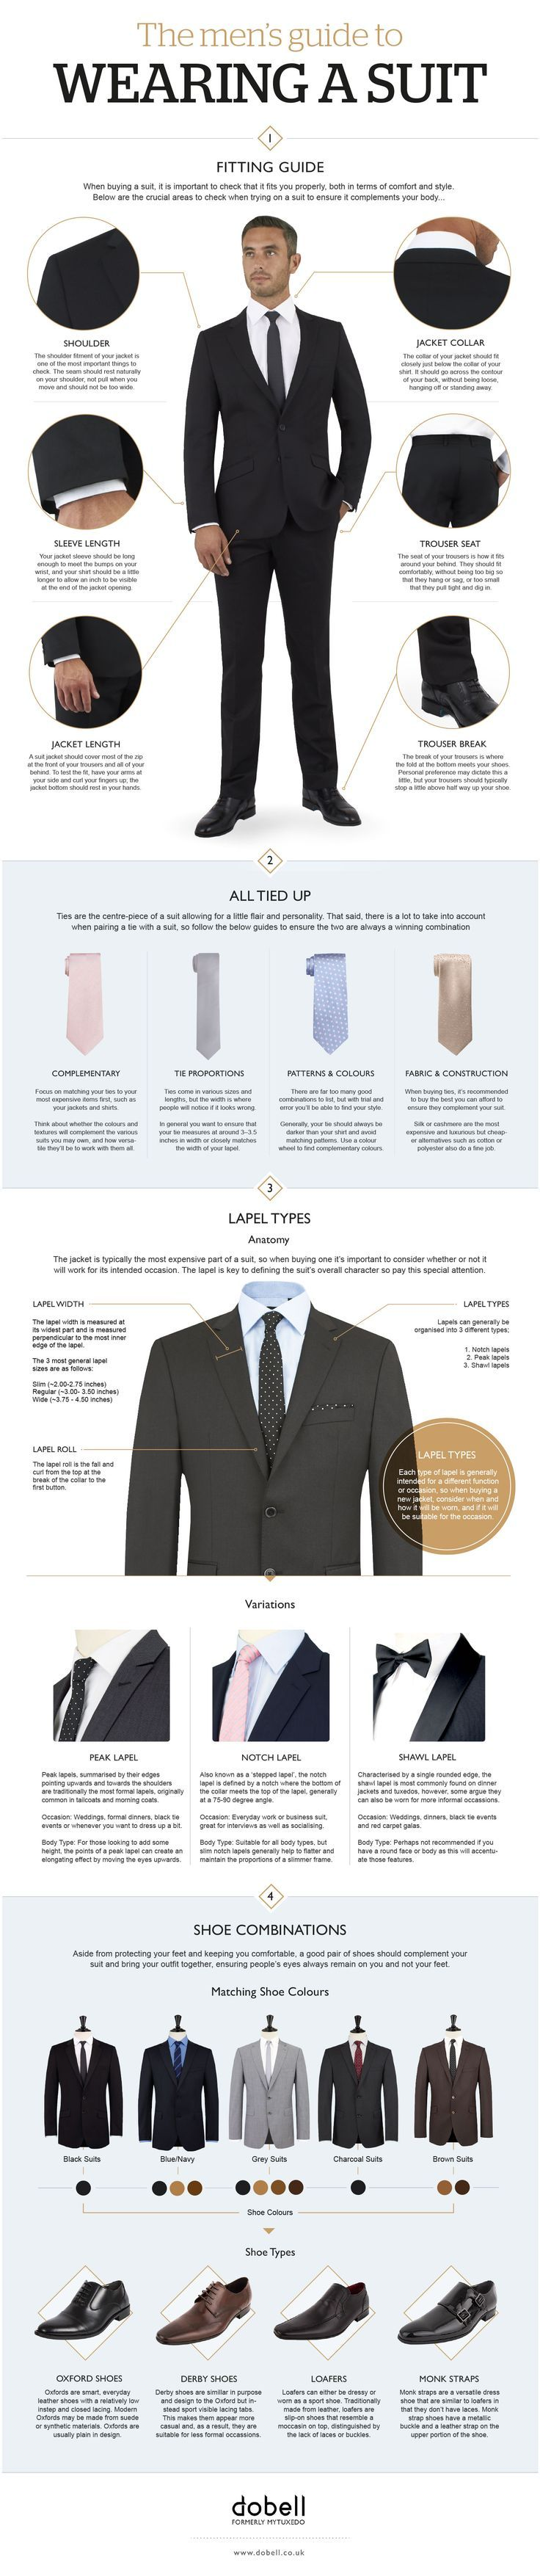 Every Man Should Know These Tips To Look Good In A Suit #men'ssuits